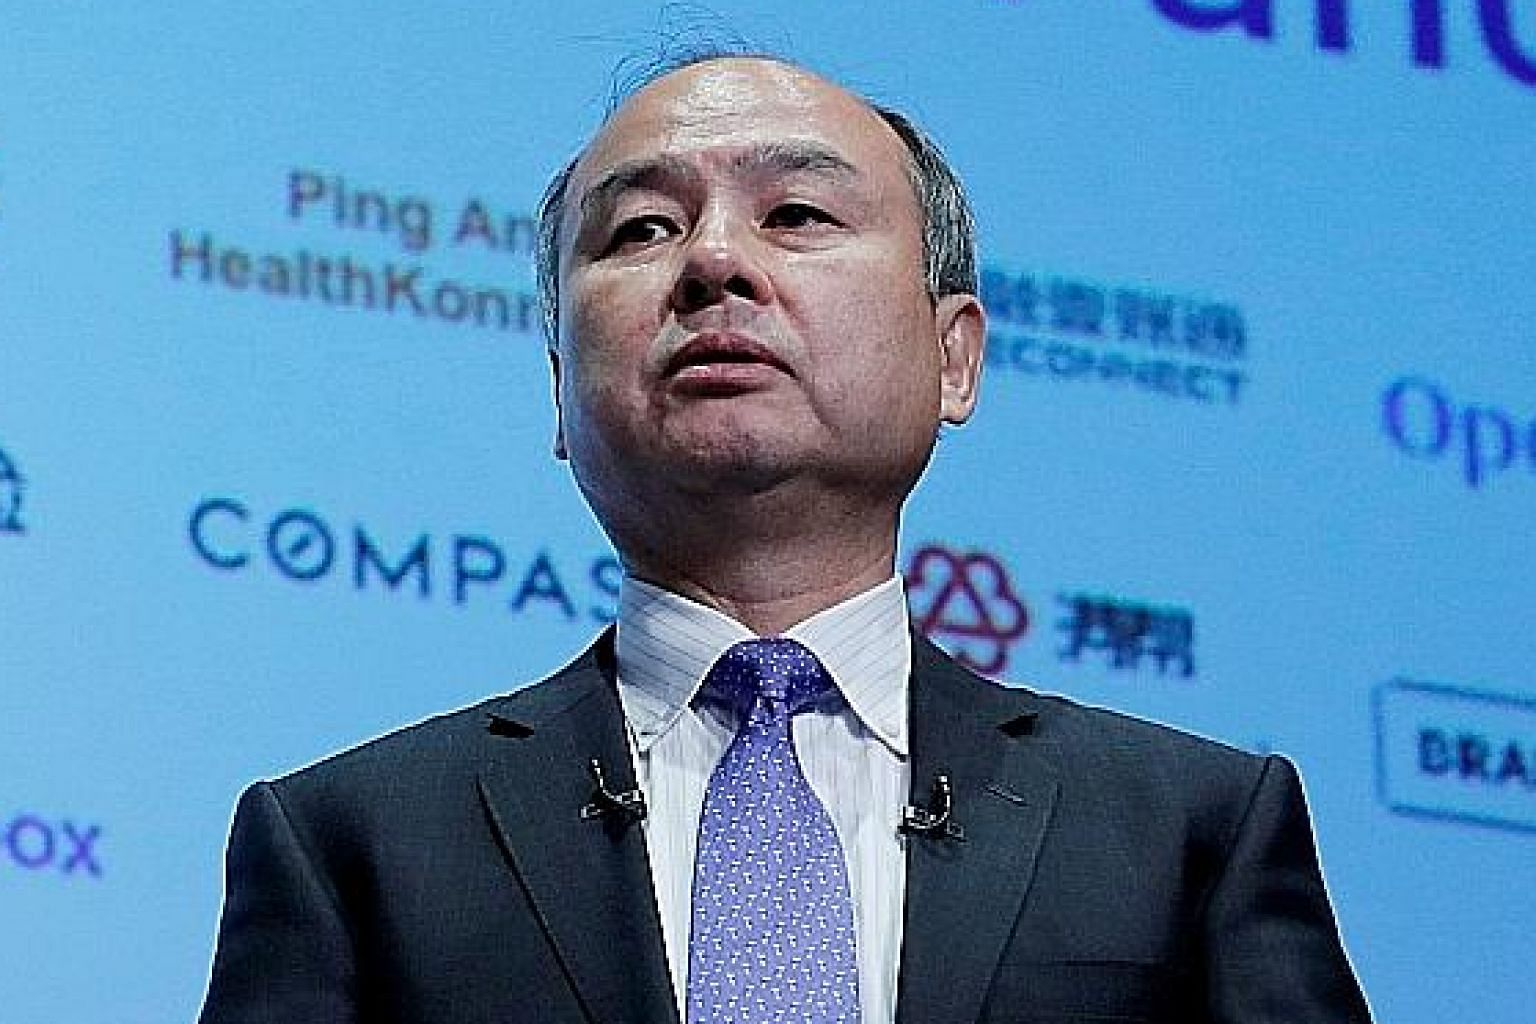 SoftBank founder Masayoshi Son's net worth has also grown to US$20 billion (S$28 billion).